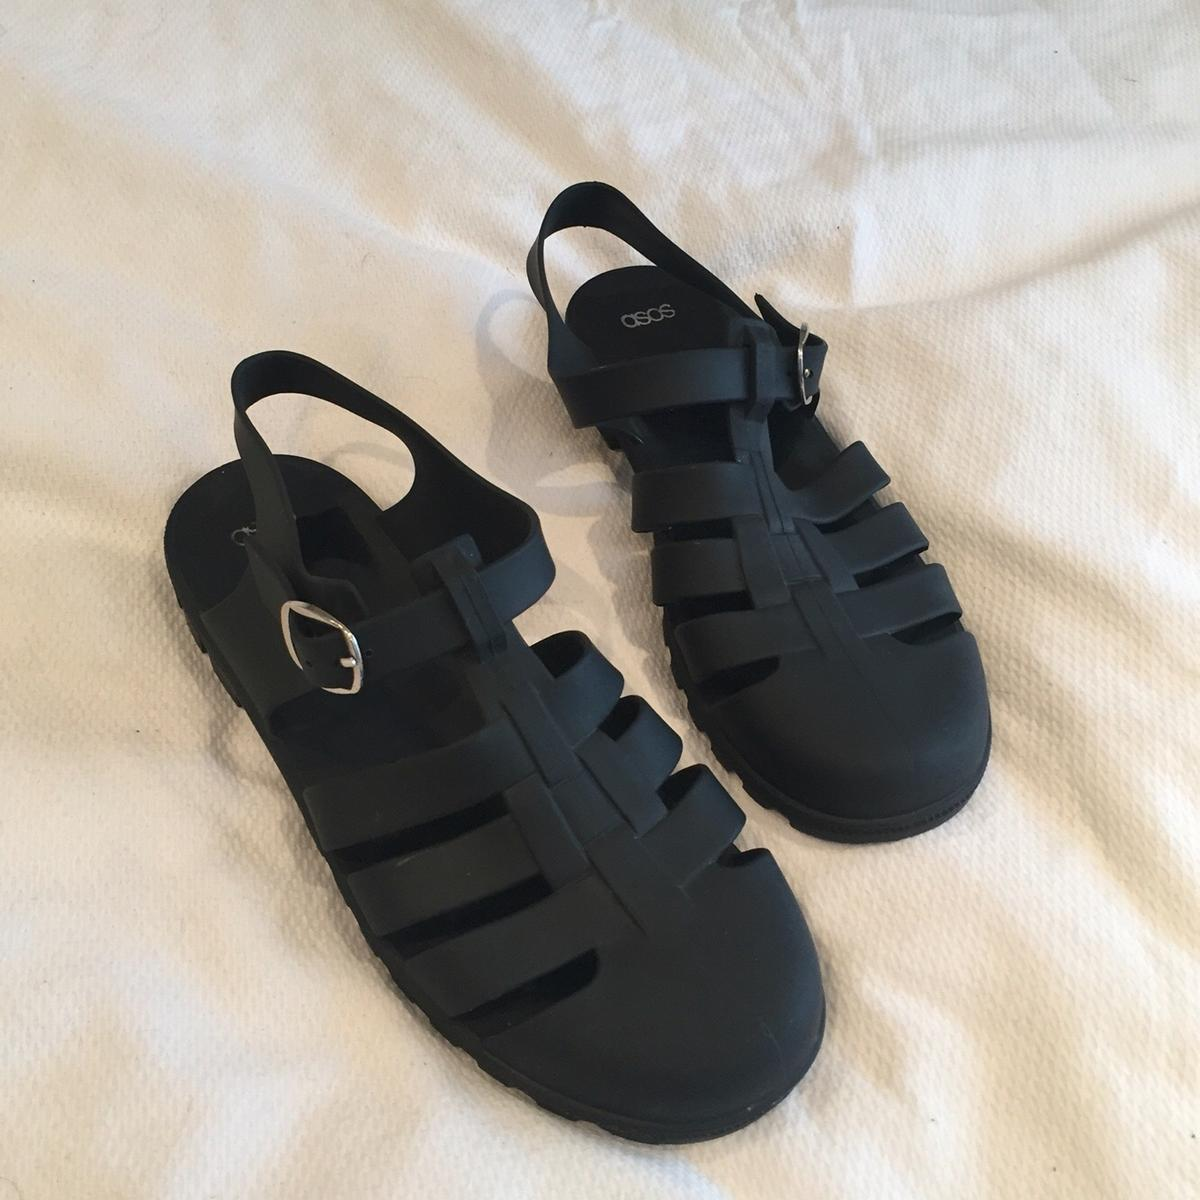 5e9b7ca65c0 ASOS matte black jelly sandals size 8 in TS17 Thornaby for £6.00 for ...